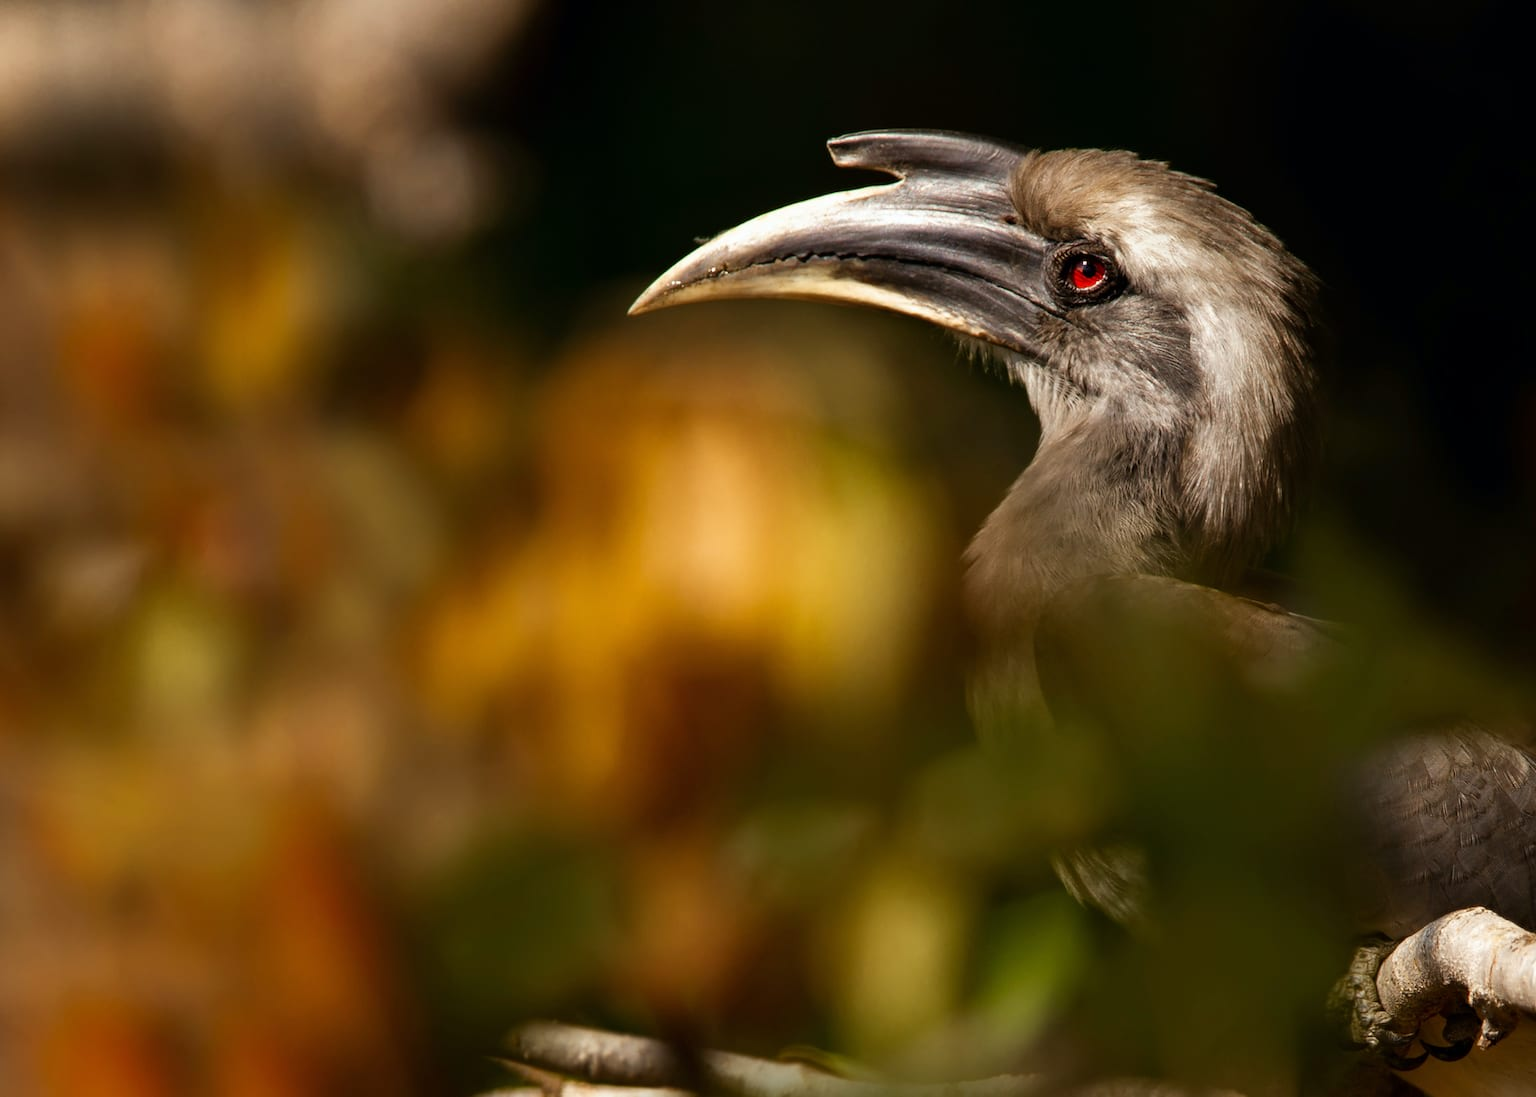 The Indian grey hornbill has grey feathers, a black-and-yellow bill, red iris, and beautiful eyelashes. Males have a larger casque than females. Photo: Anuradha Marwah/Shutterstock  Cover: Measuring around 55-70 cm, the Indian grey hornbill is one of nine species of hornbills found in India. Cover photo: Surya Ramachandran